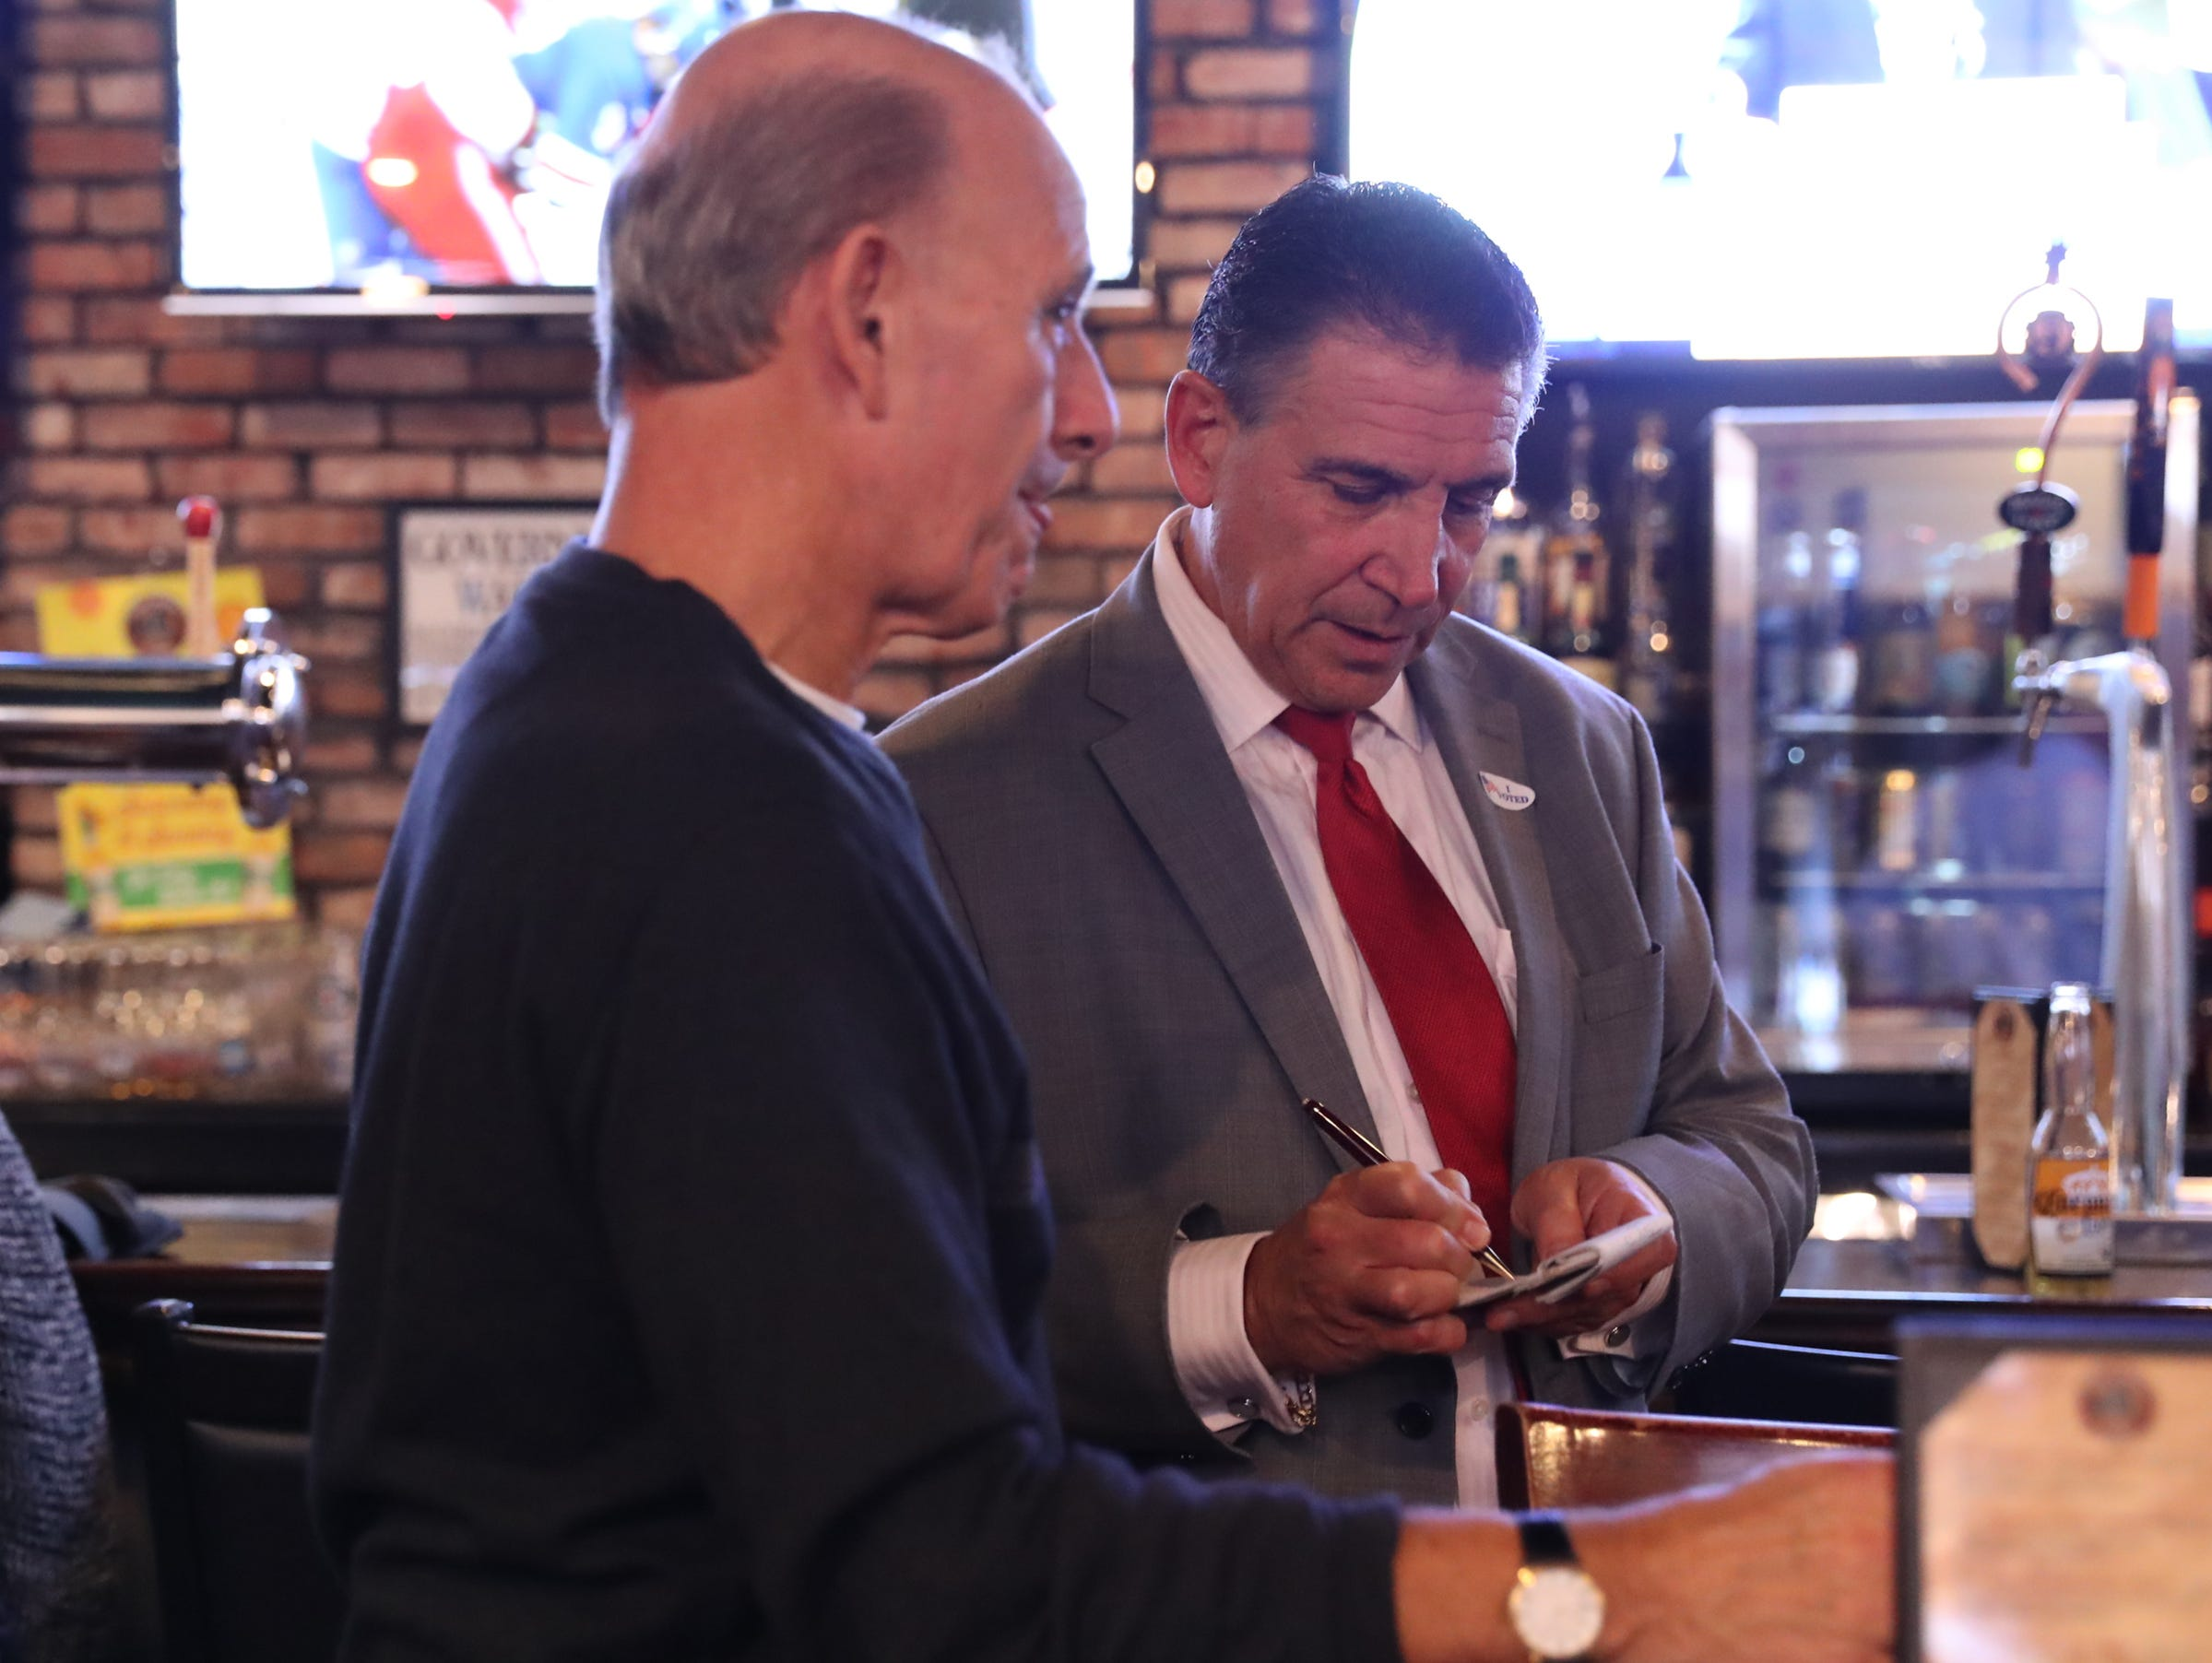 Rockland County legislator Lon Hofstein takes notes at the Rockland Republican Commitee's election night gathering at Foggy Bottom Tavern in New City on Tuesday, November 6, 2018.